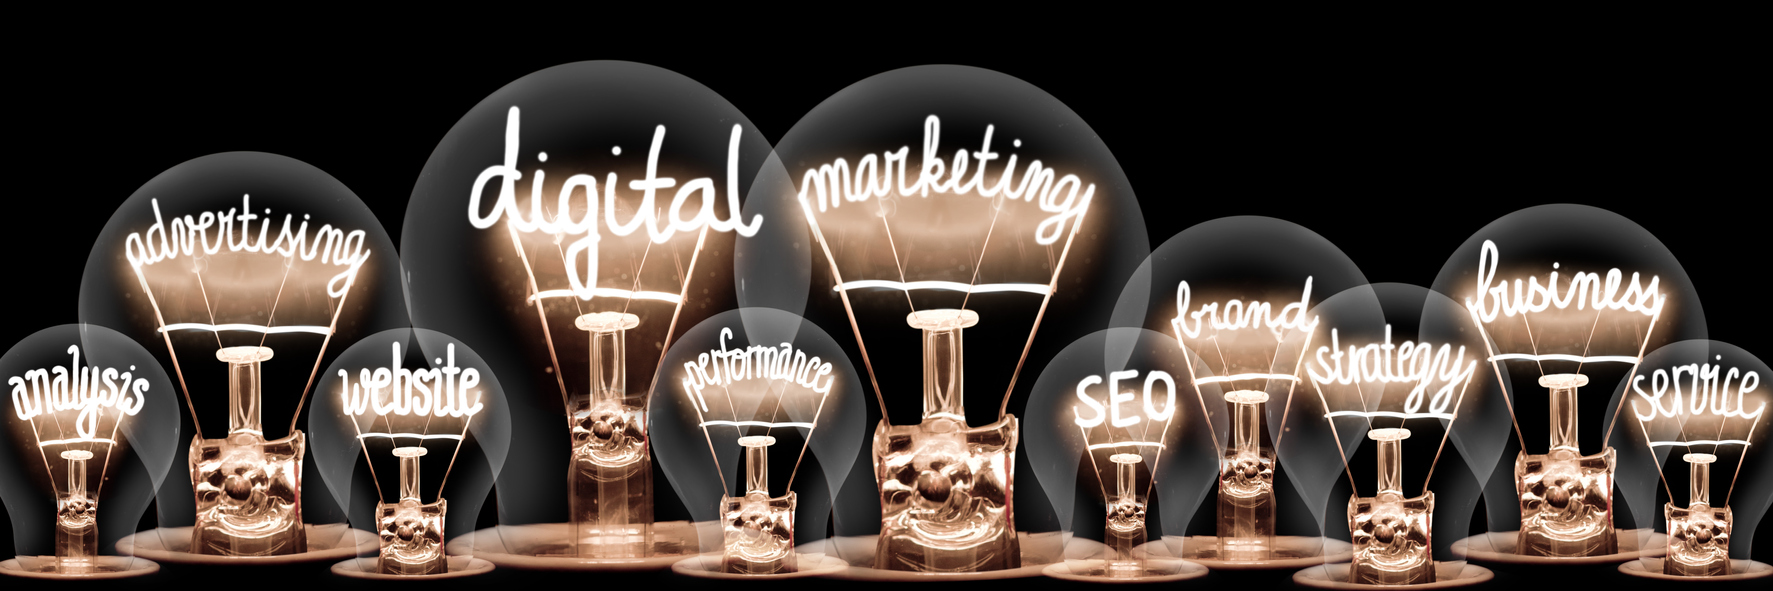 Digital marketing activities come in many forms